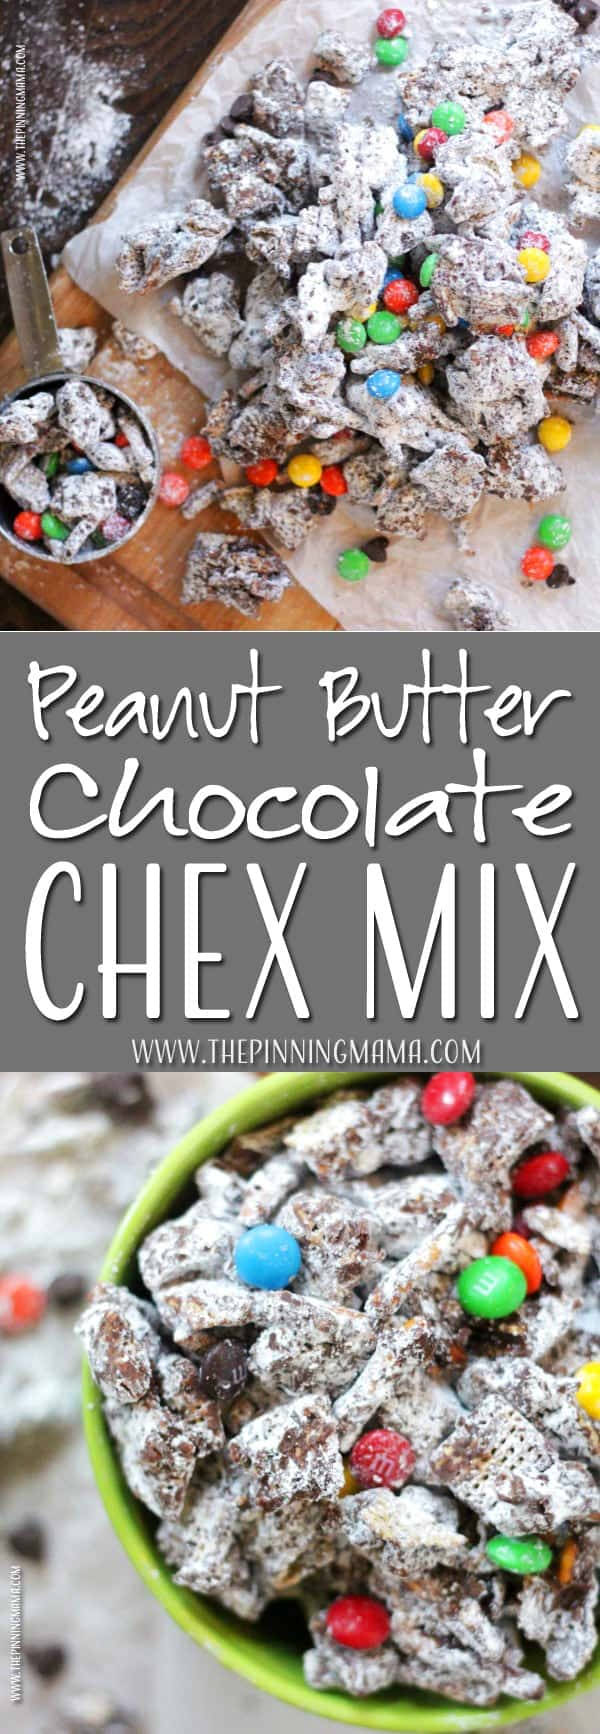 Chocolate and Peanut butter Chex Mix recipe?! Where have you been all my life!! YUM!